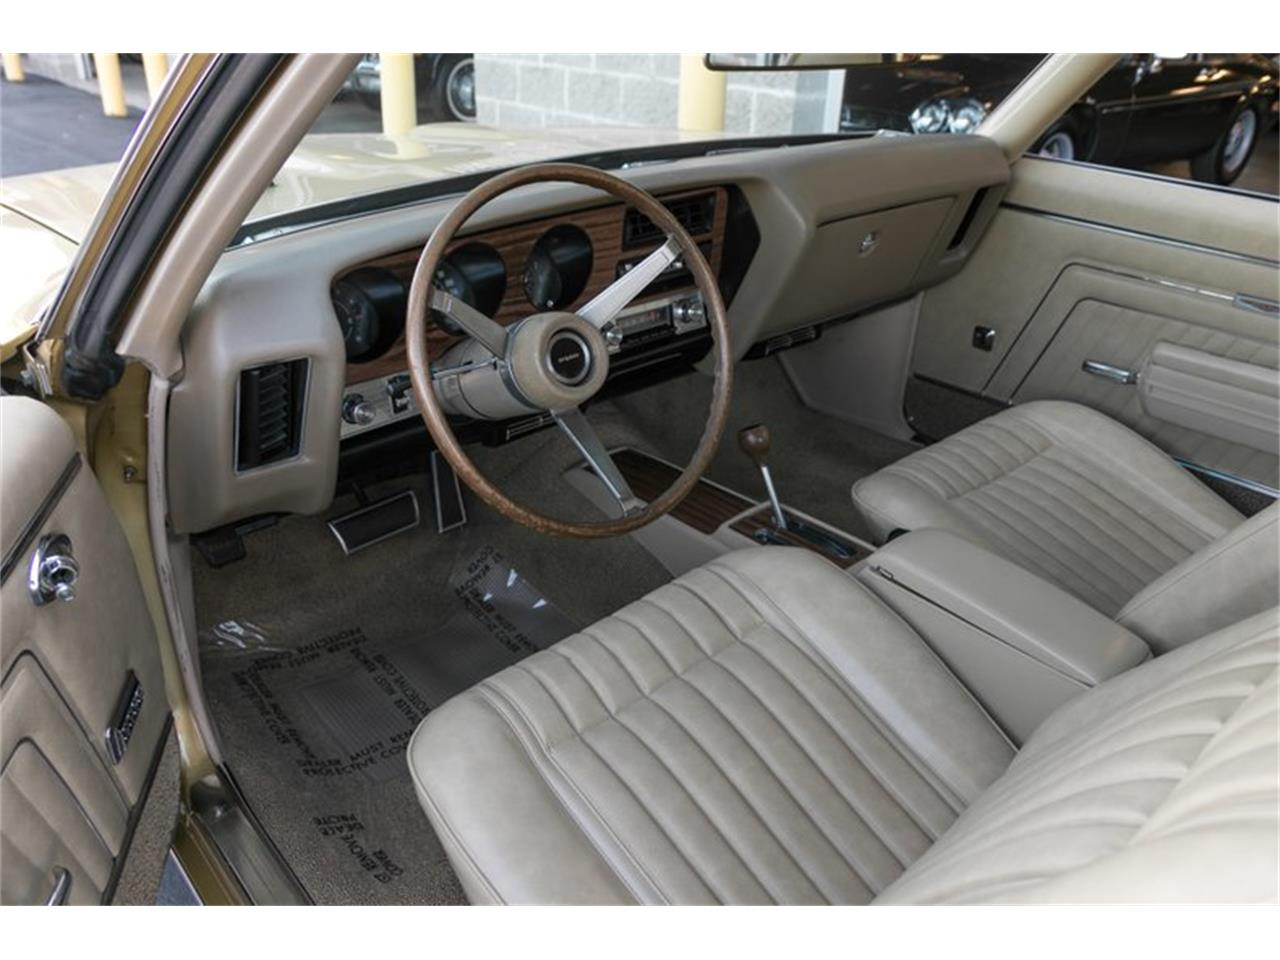 Large Picture of '70 Pontiac GTO located in St. Charles Missouri - $59,995.00 Offered by Fast Lane Classic Cars Inc. - QKPX